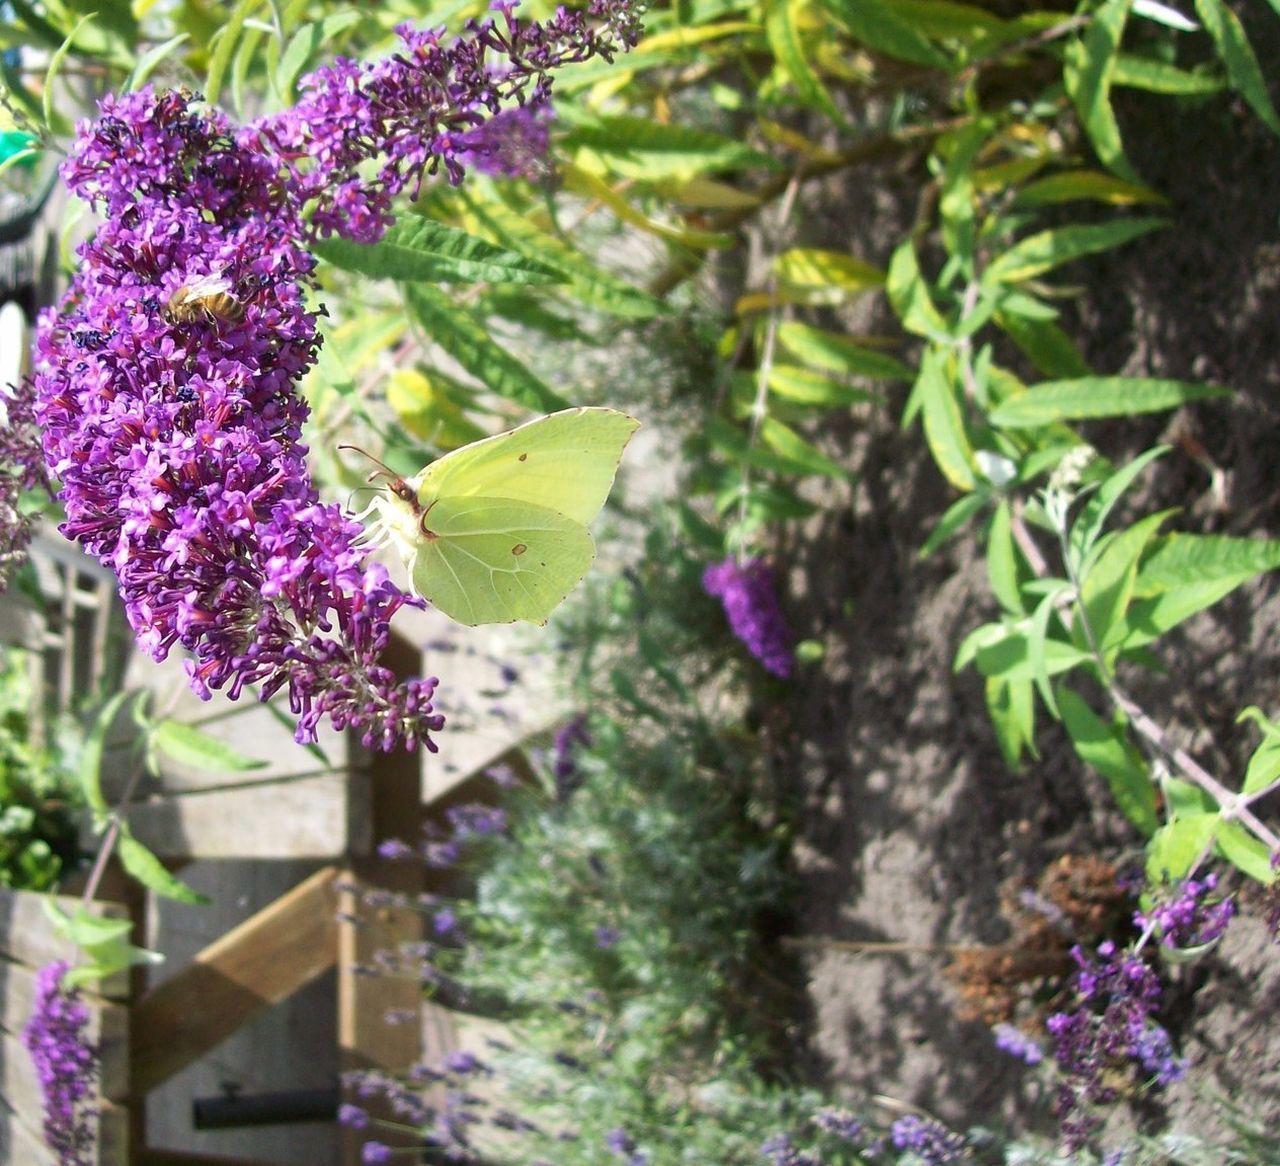 growth, purple, plant, nature, no people, outdoors, day, flower, fragility, leaf, beauty in nature, freshness, blooming, close-up